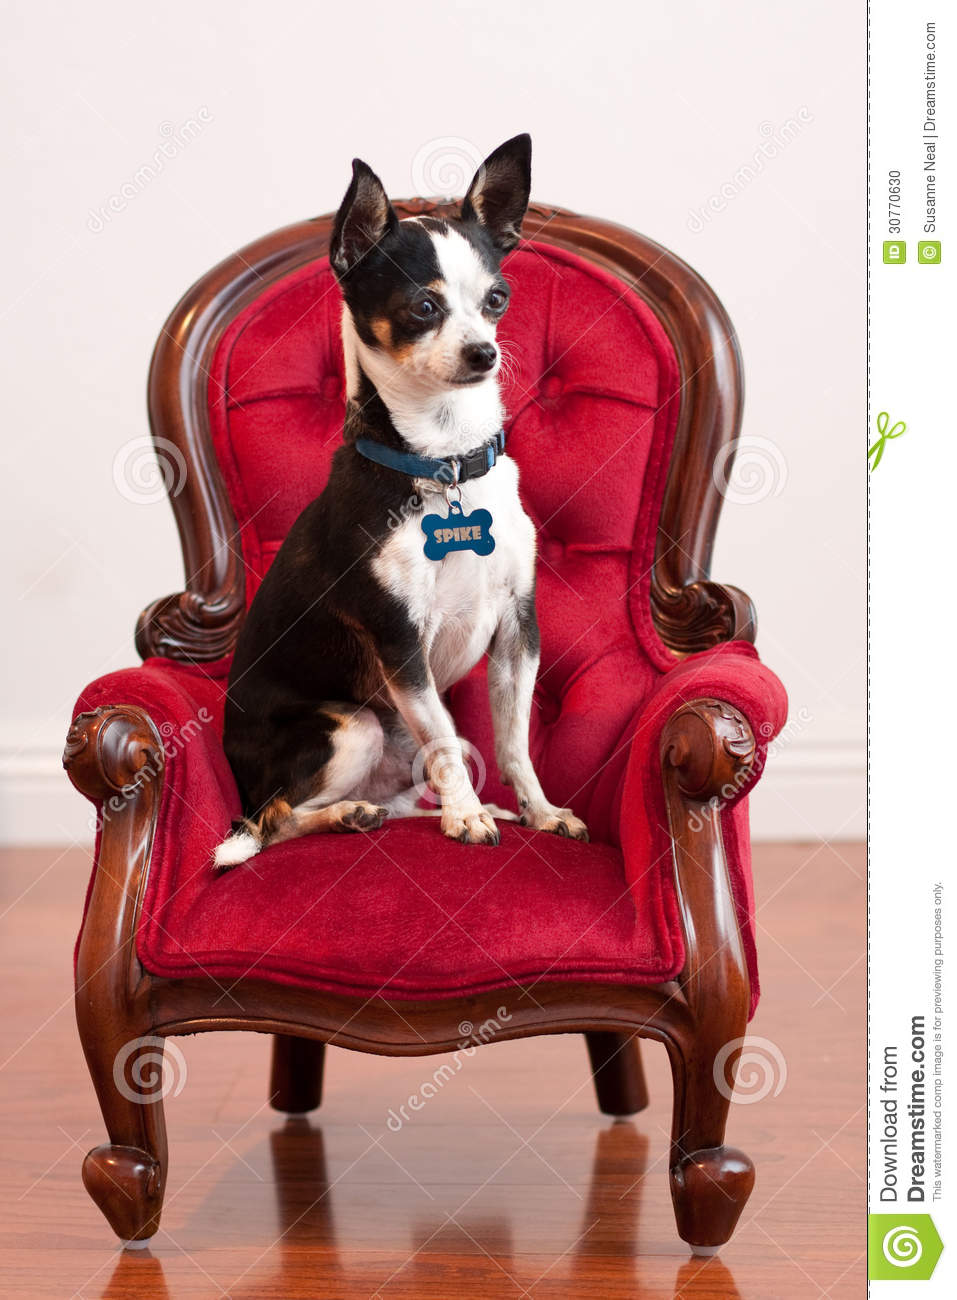 Cute Chihuahua on red old fashioned chair